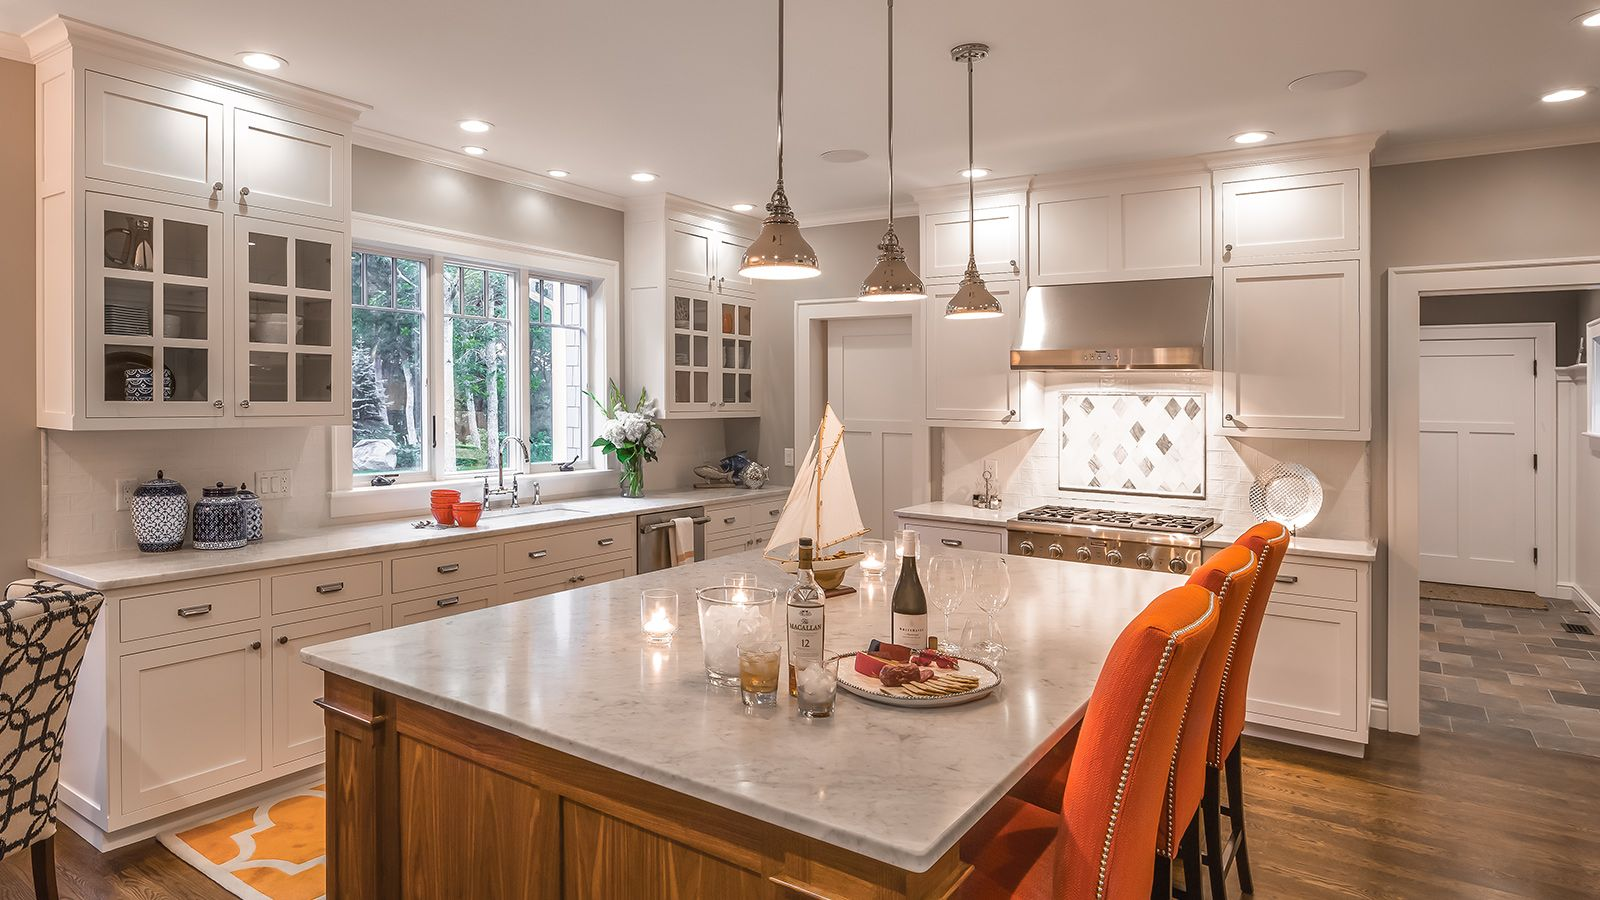 Brewster New Construction | Cutting Edge Homes U2013 Construction Management And  Design, Fine Homebuilding And